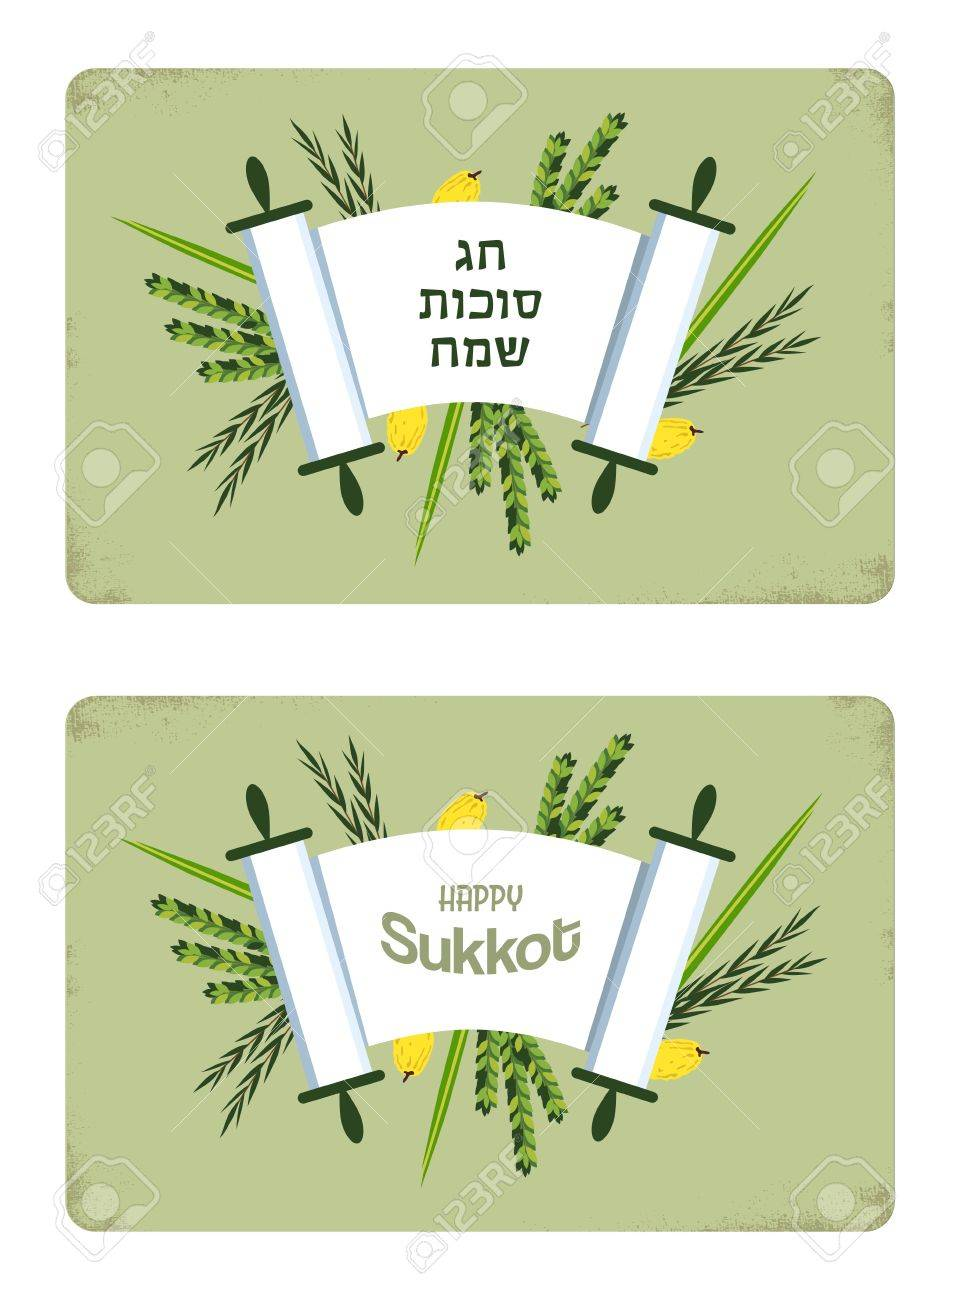 Greeting Cards For Jewish Holiday Sukkot Happy Sukkot In Hebrew